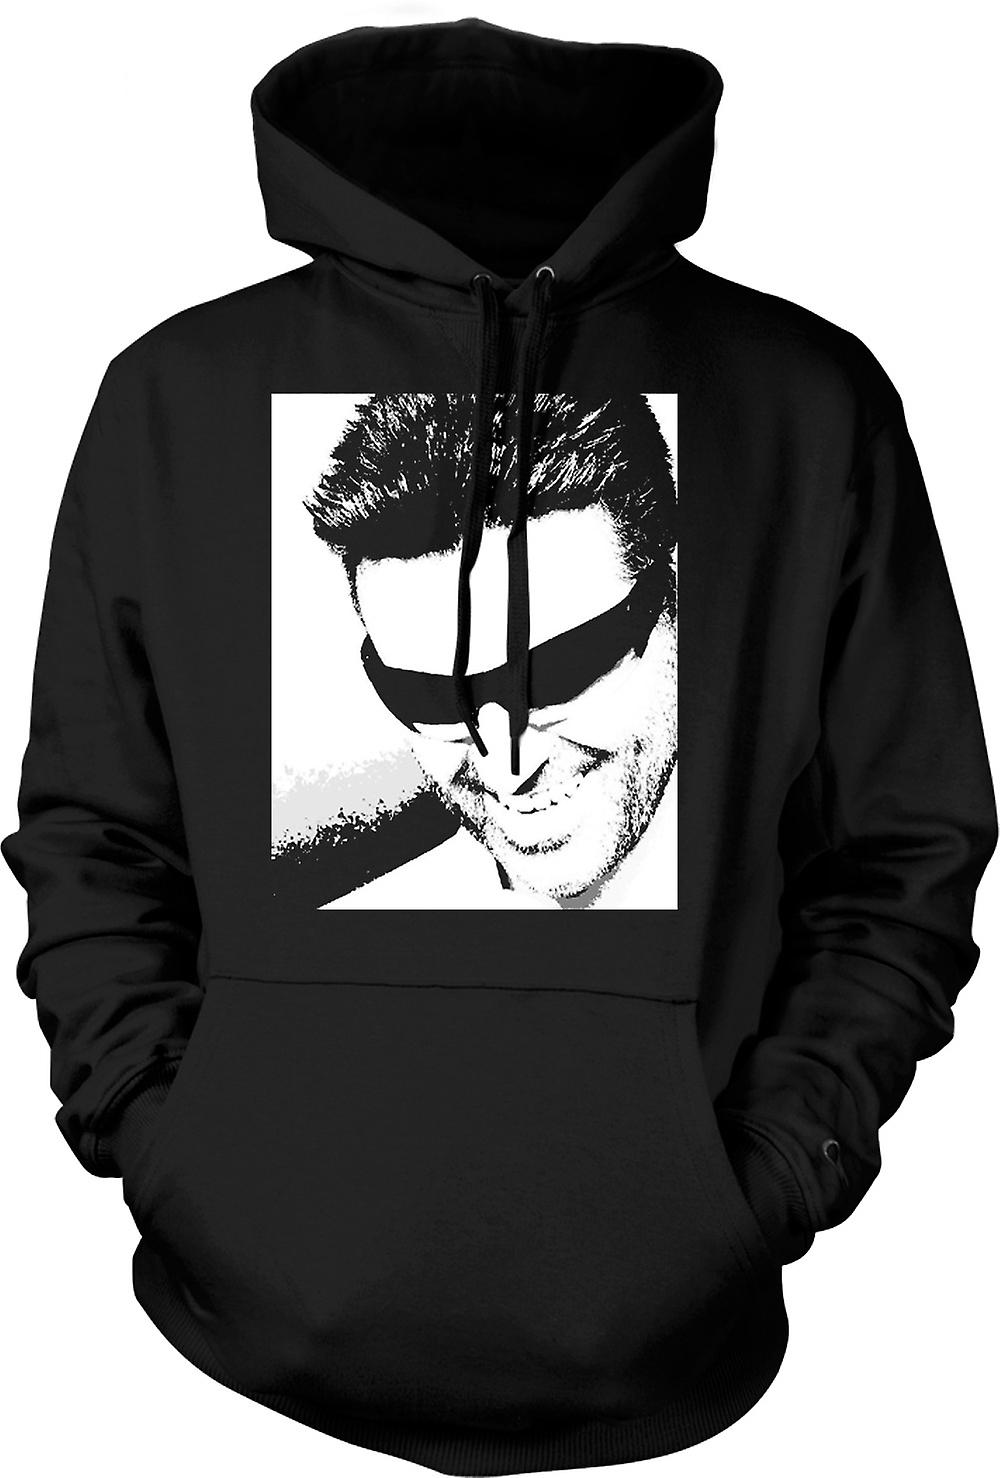 Mens Hoodie - George Michael - Pop Art - portret